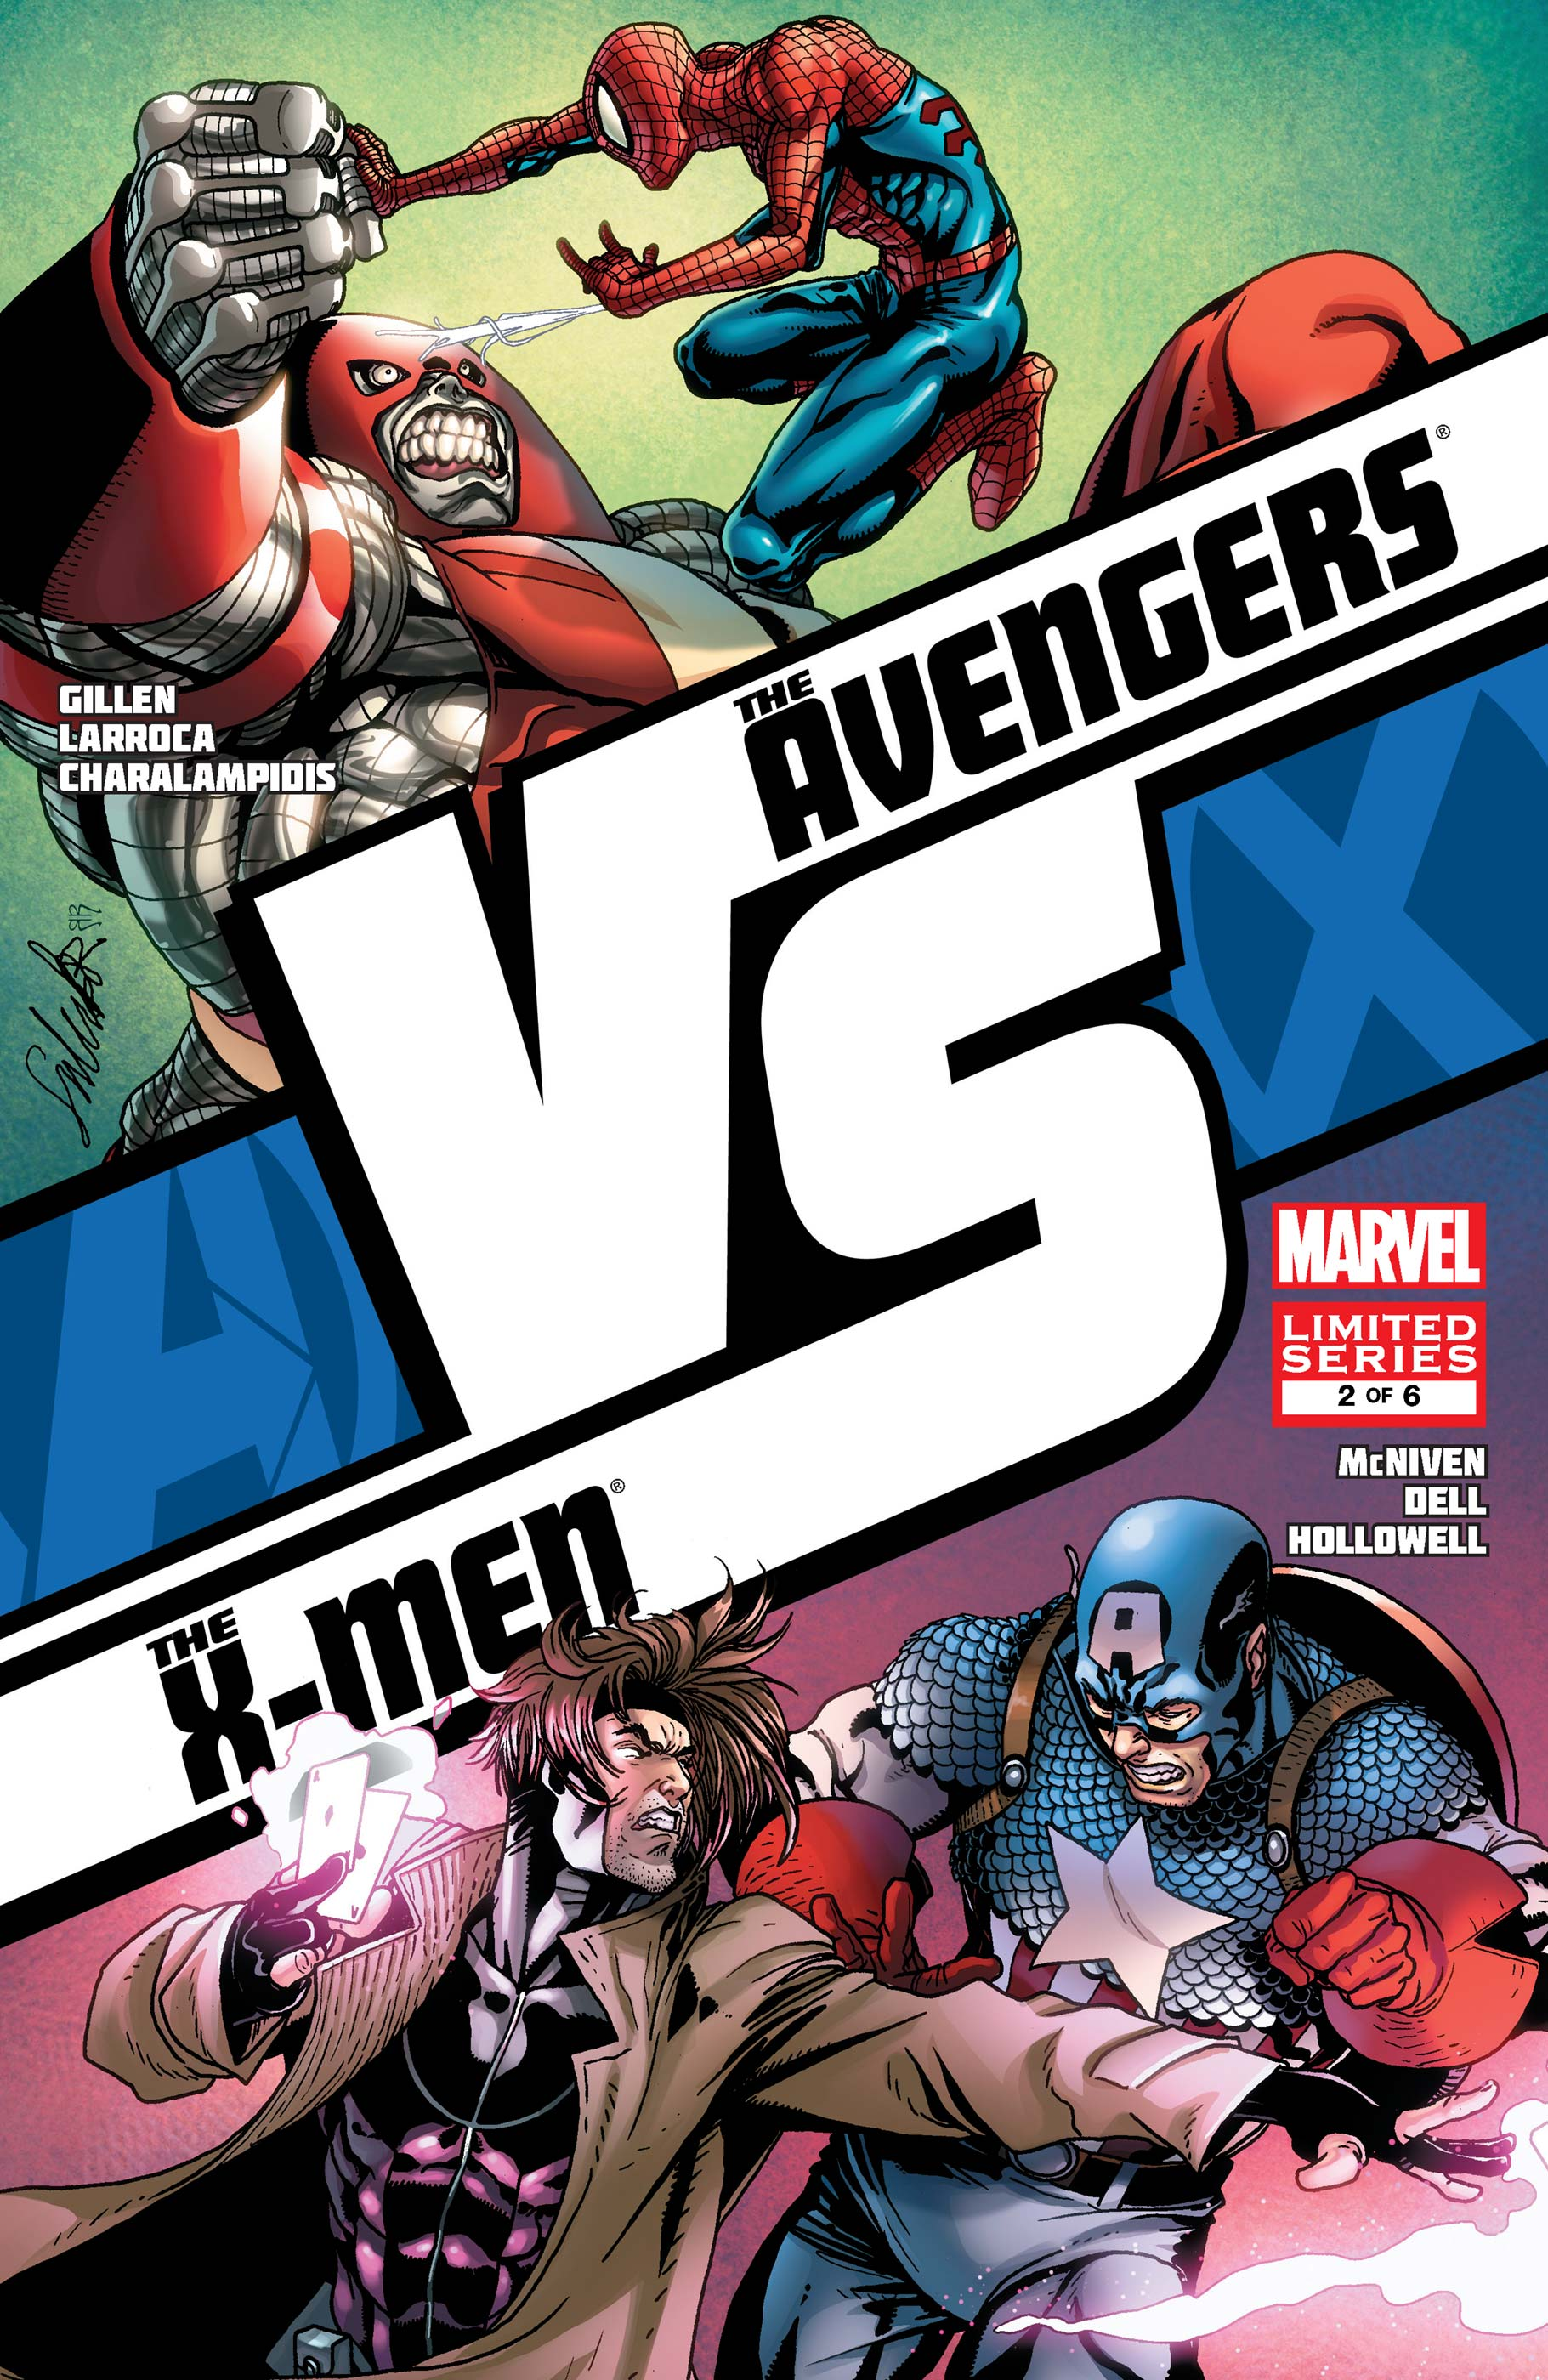 Avengers Vs. X-Men: Versus (2011) #2